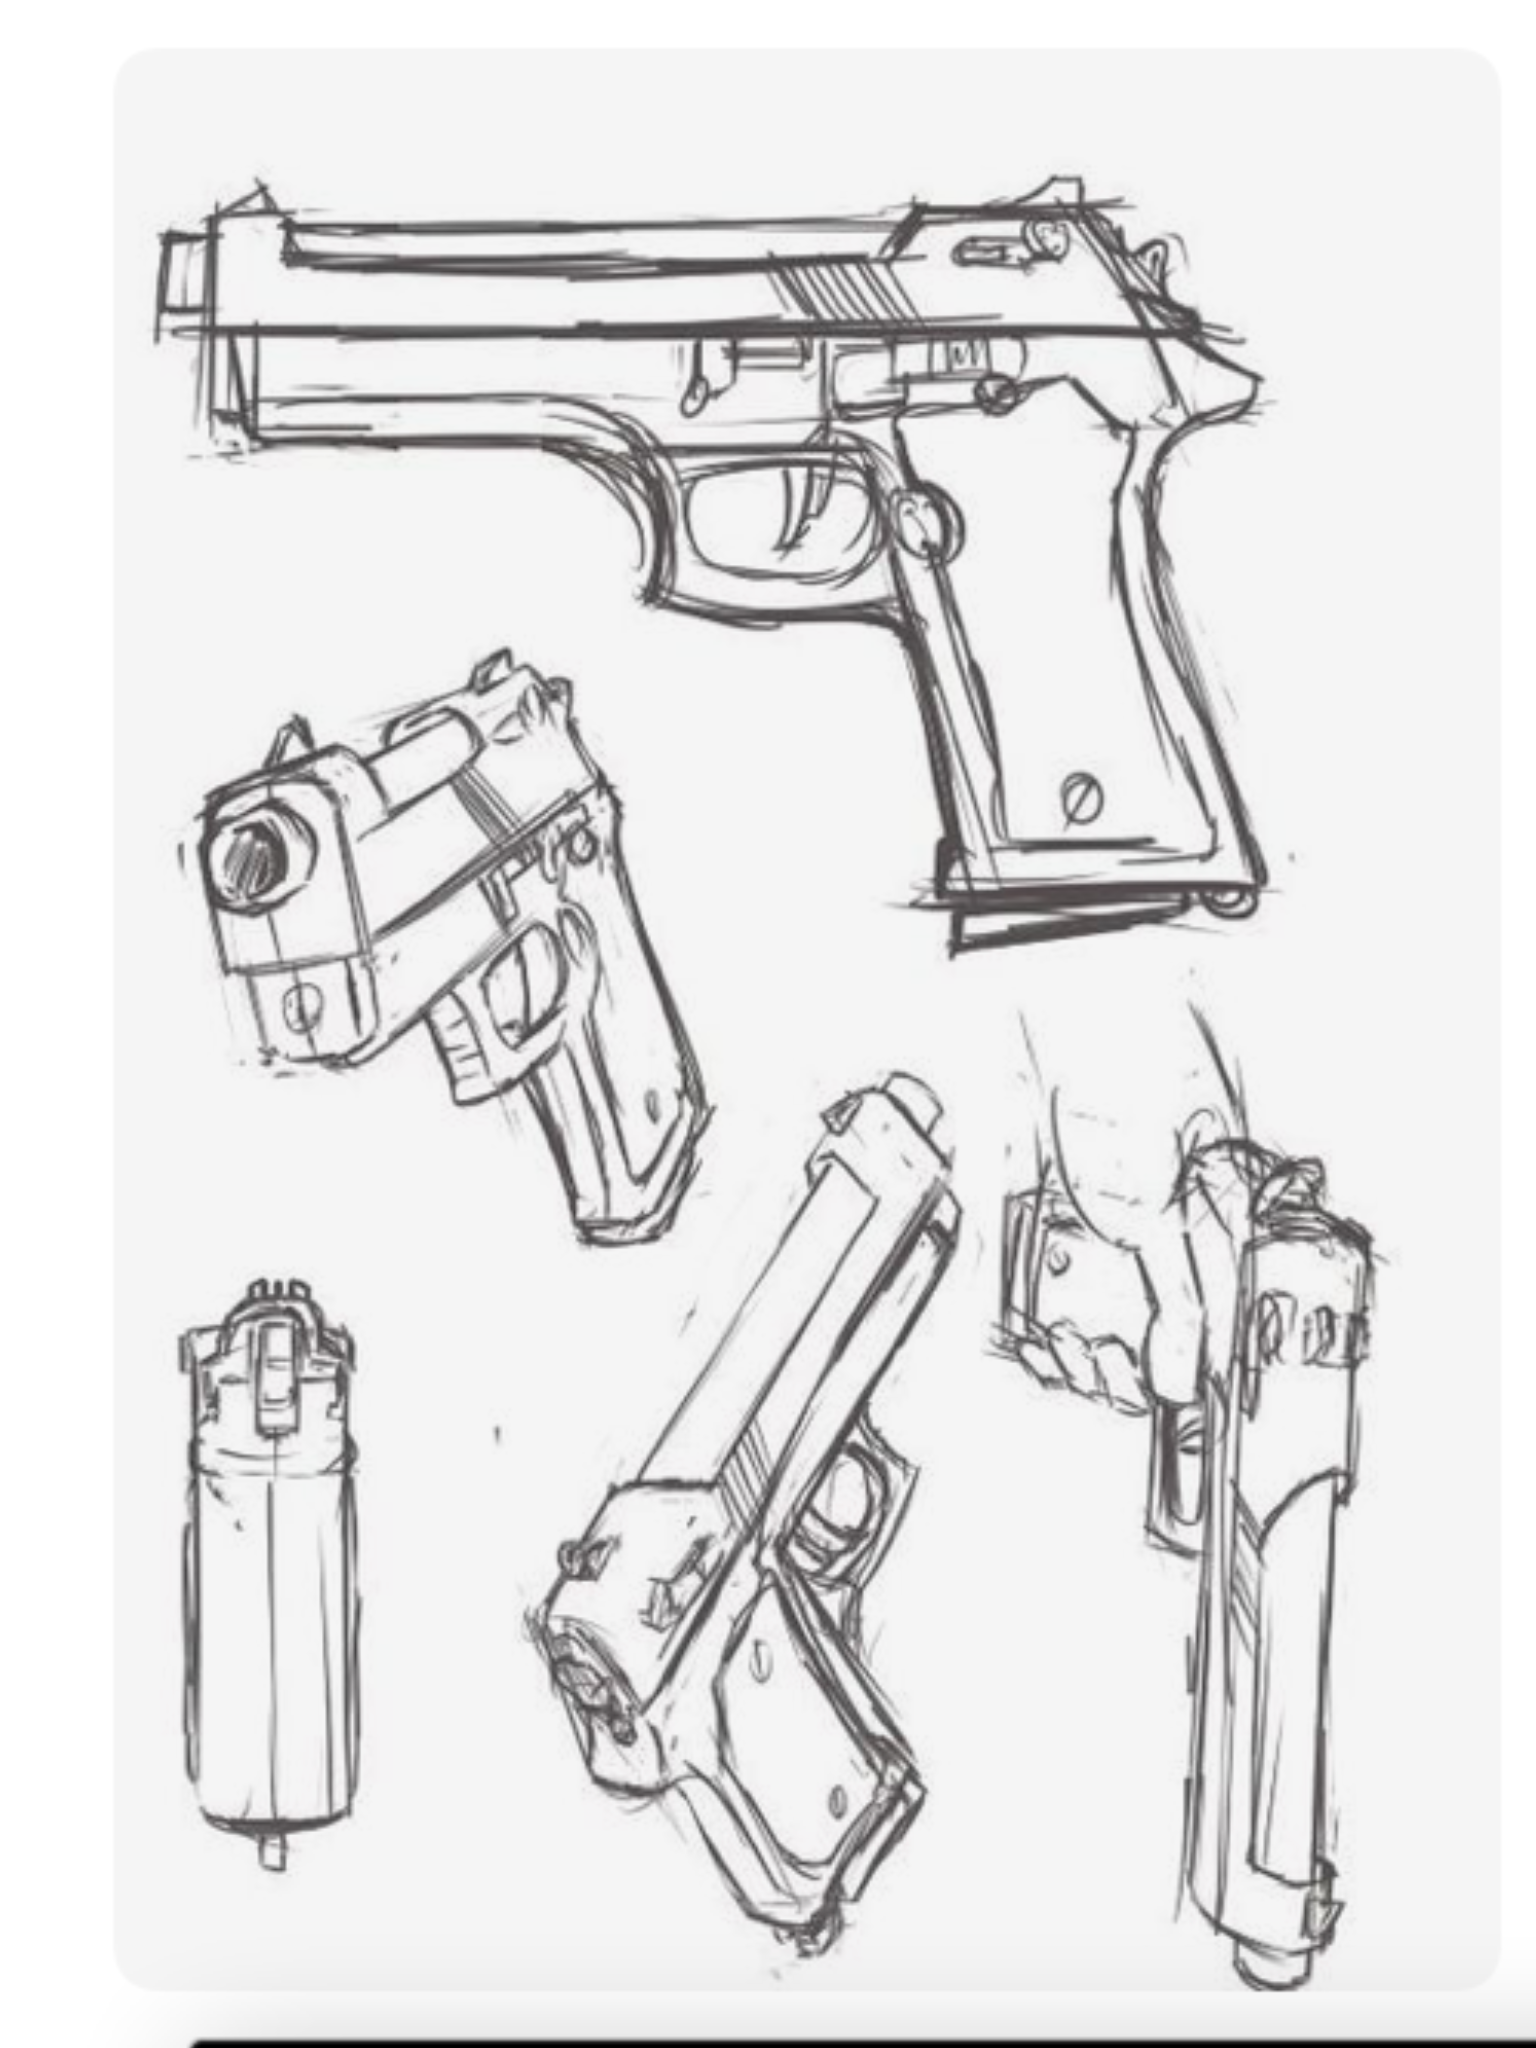 Double Barrel Shotgun Drawing at GetDrawings.com | Free ...